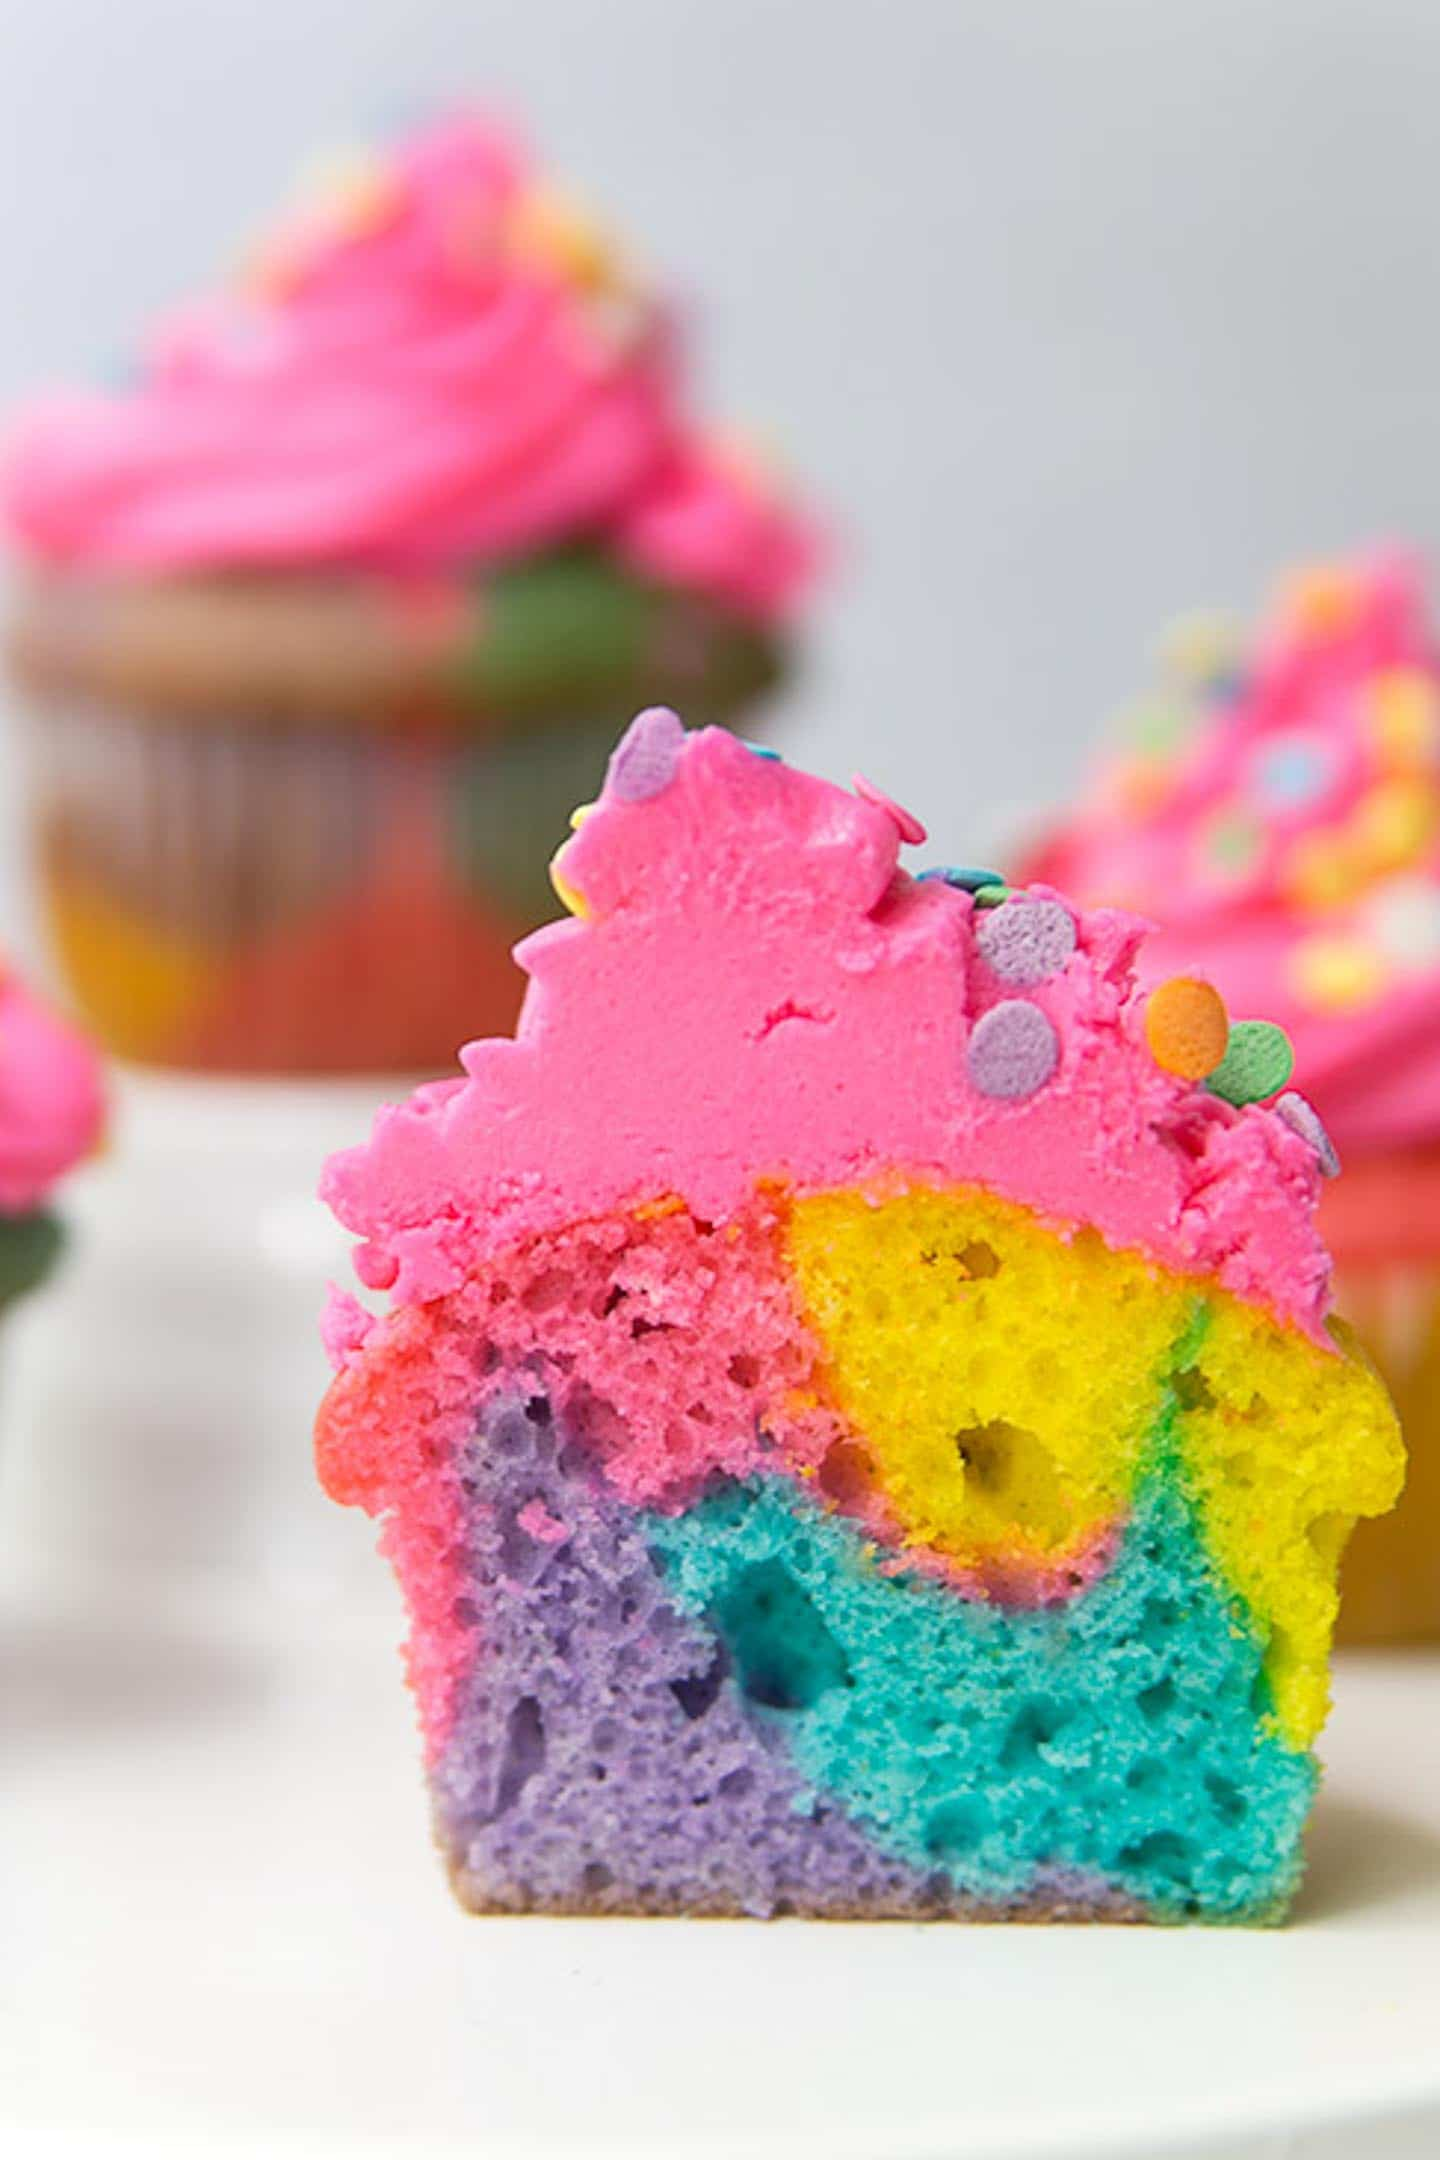 rainbow marble cut in half to see the inside of the cupcake